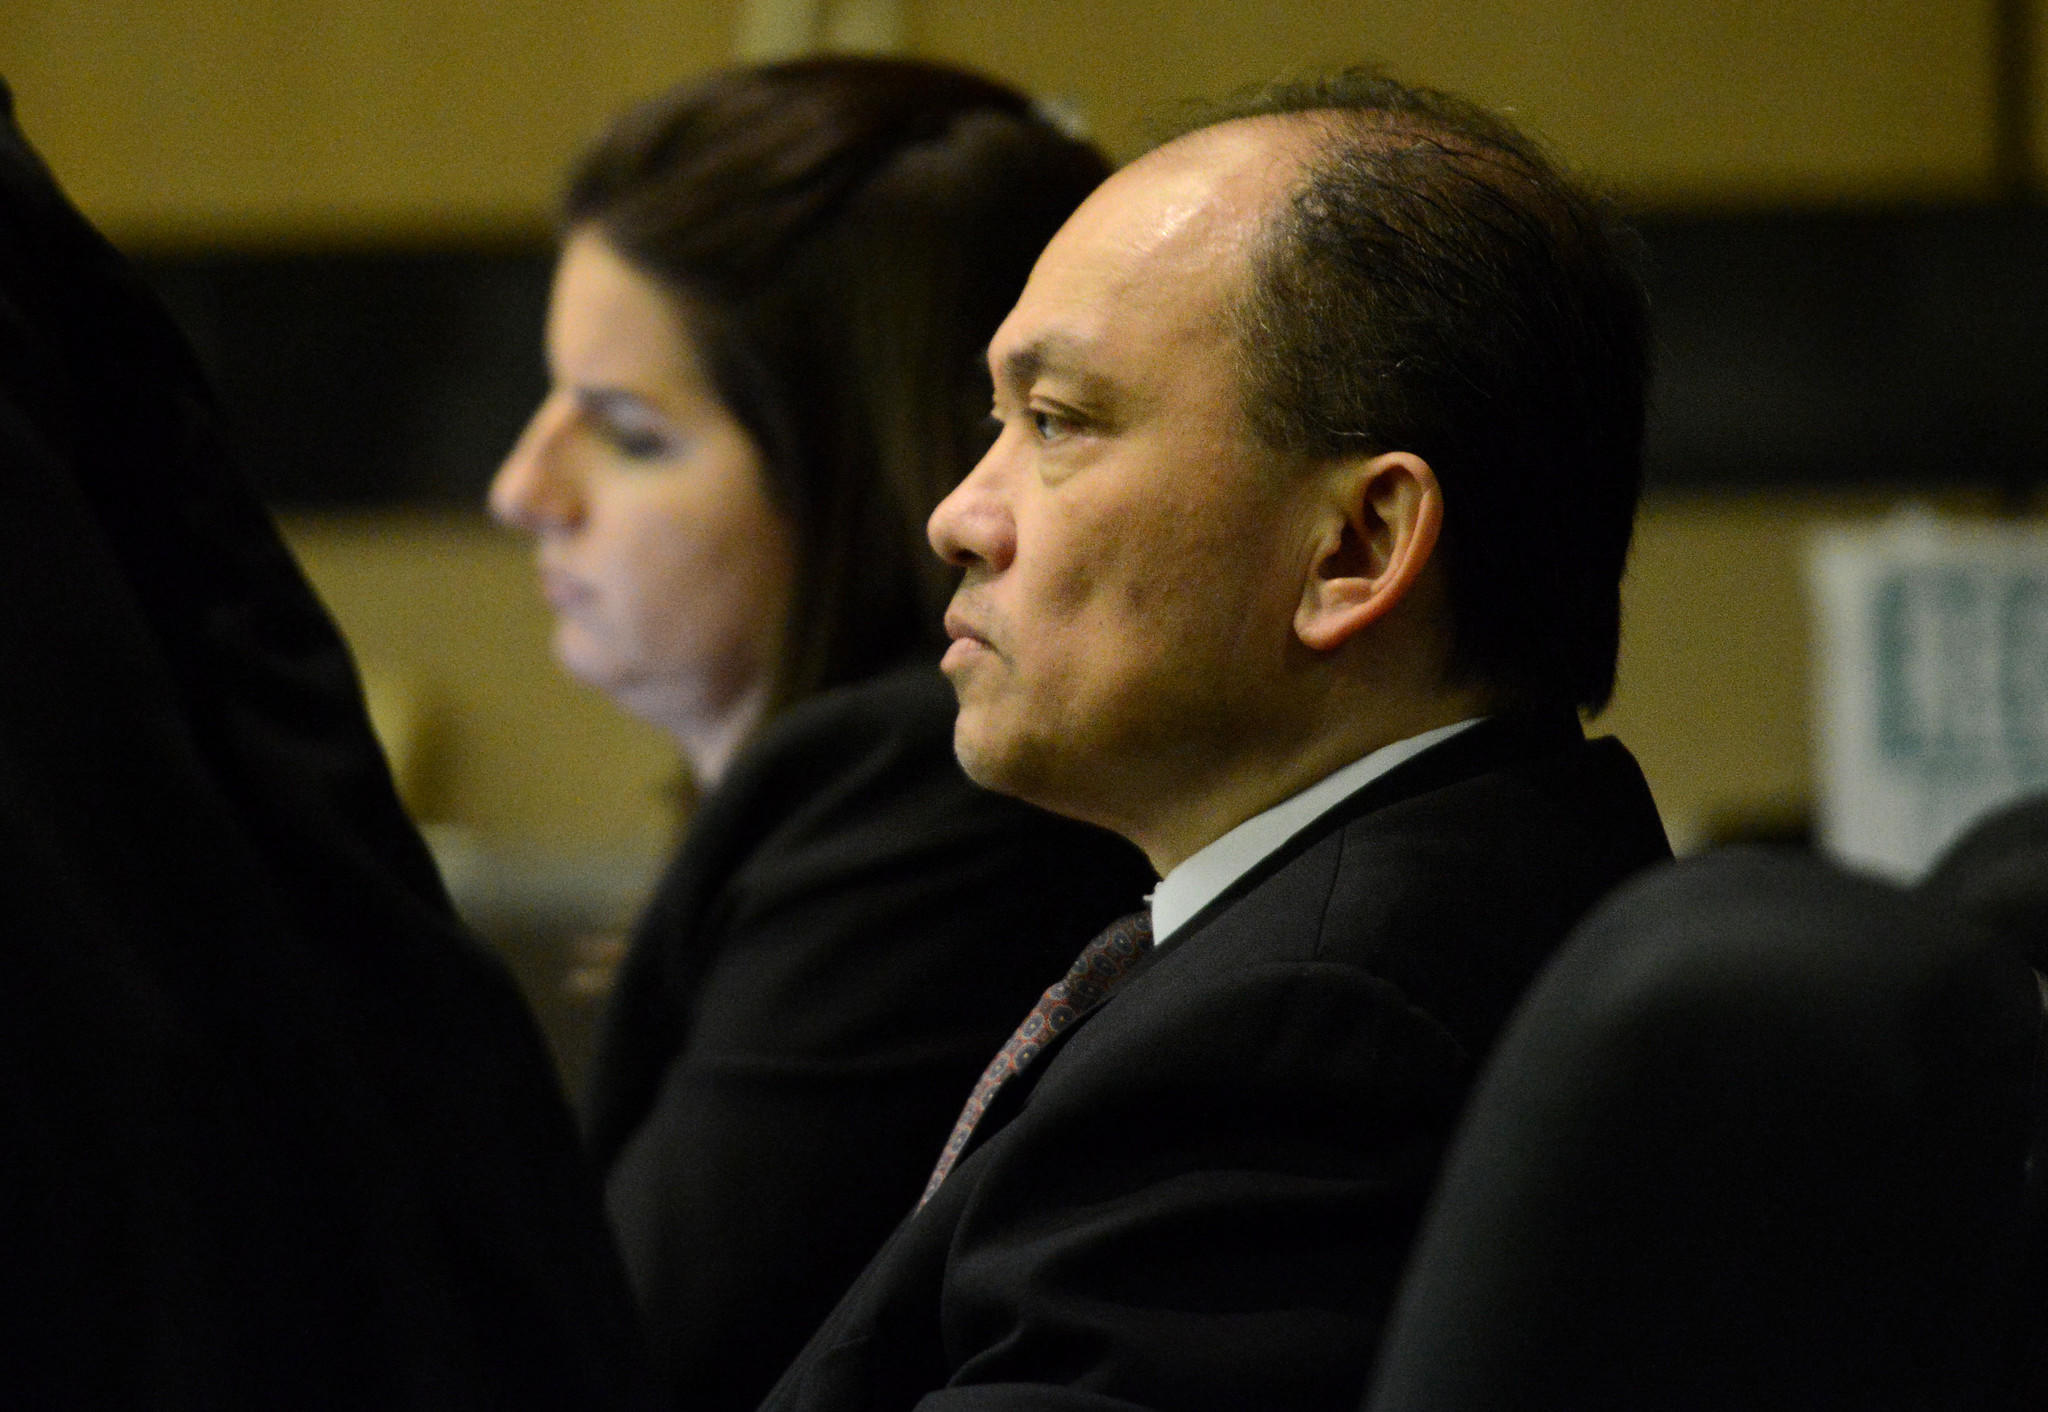 Jimmy Dac Ho, 51, sits in the Palm Beach County Courthouse during his trial for the death of Sheri Carter, 29. On April 17, jurors convicted Ho of first-degree murder. Jim Rassol, Sun Sentinel.